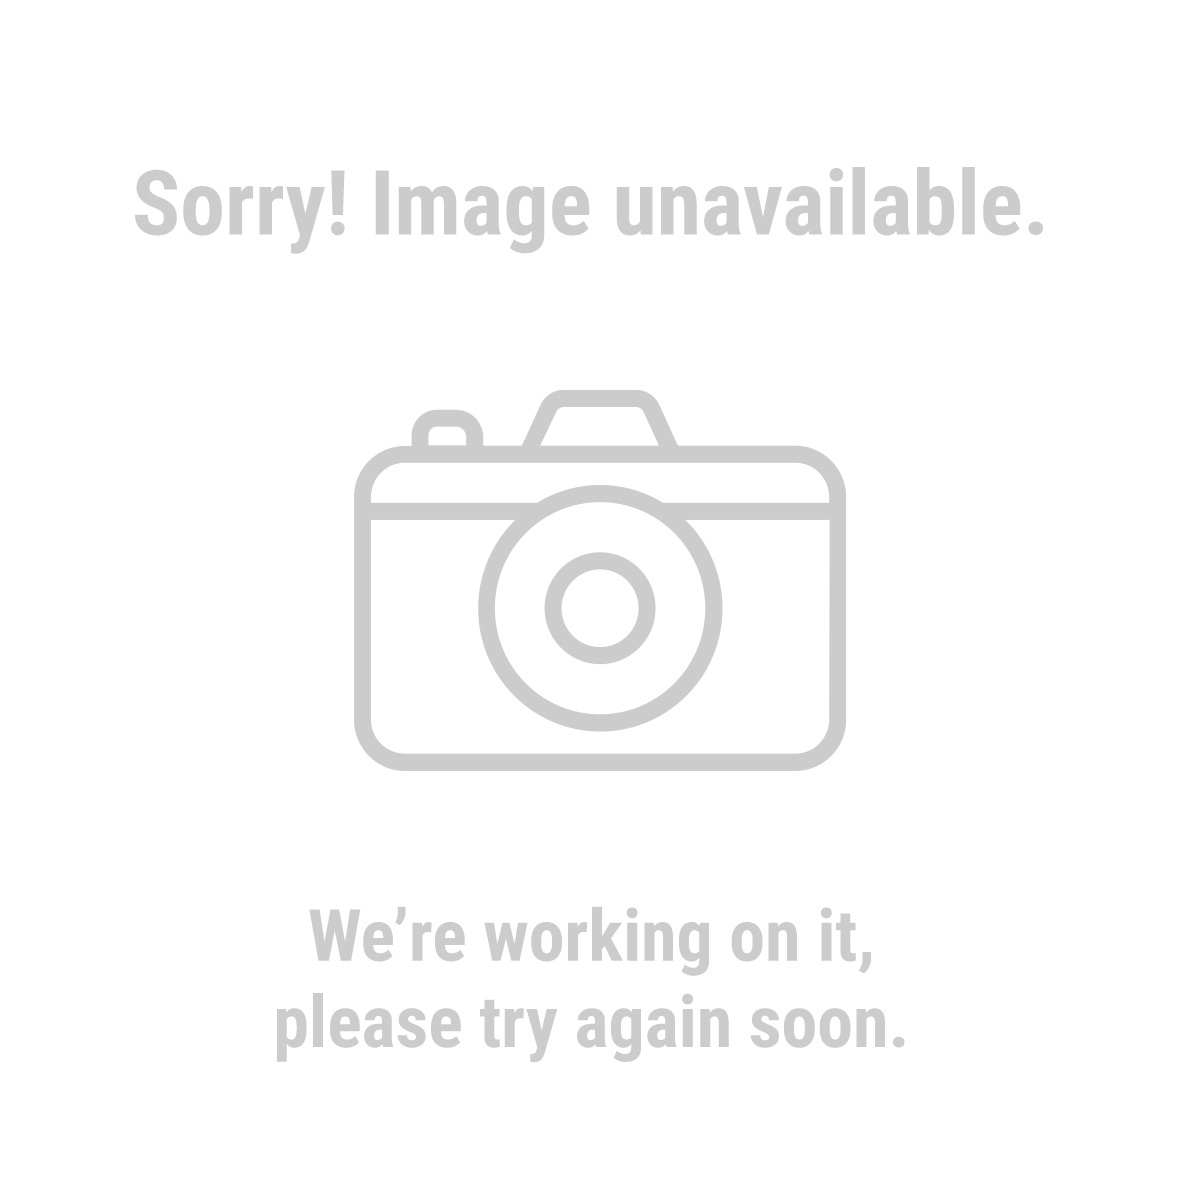 Predator Generators 62564 Inverter Generator Parallel Kit with 30A RV Ready Outlet